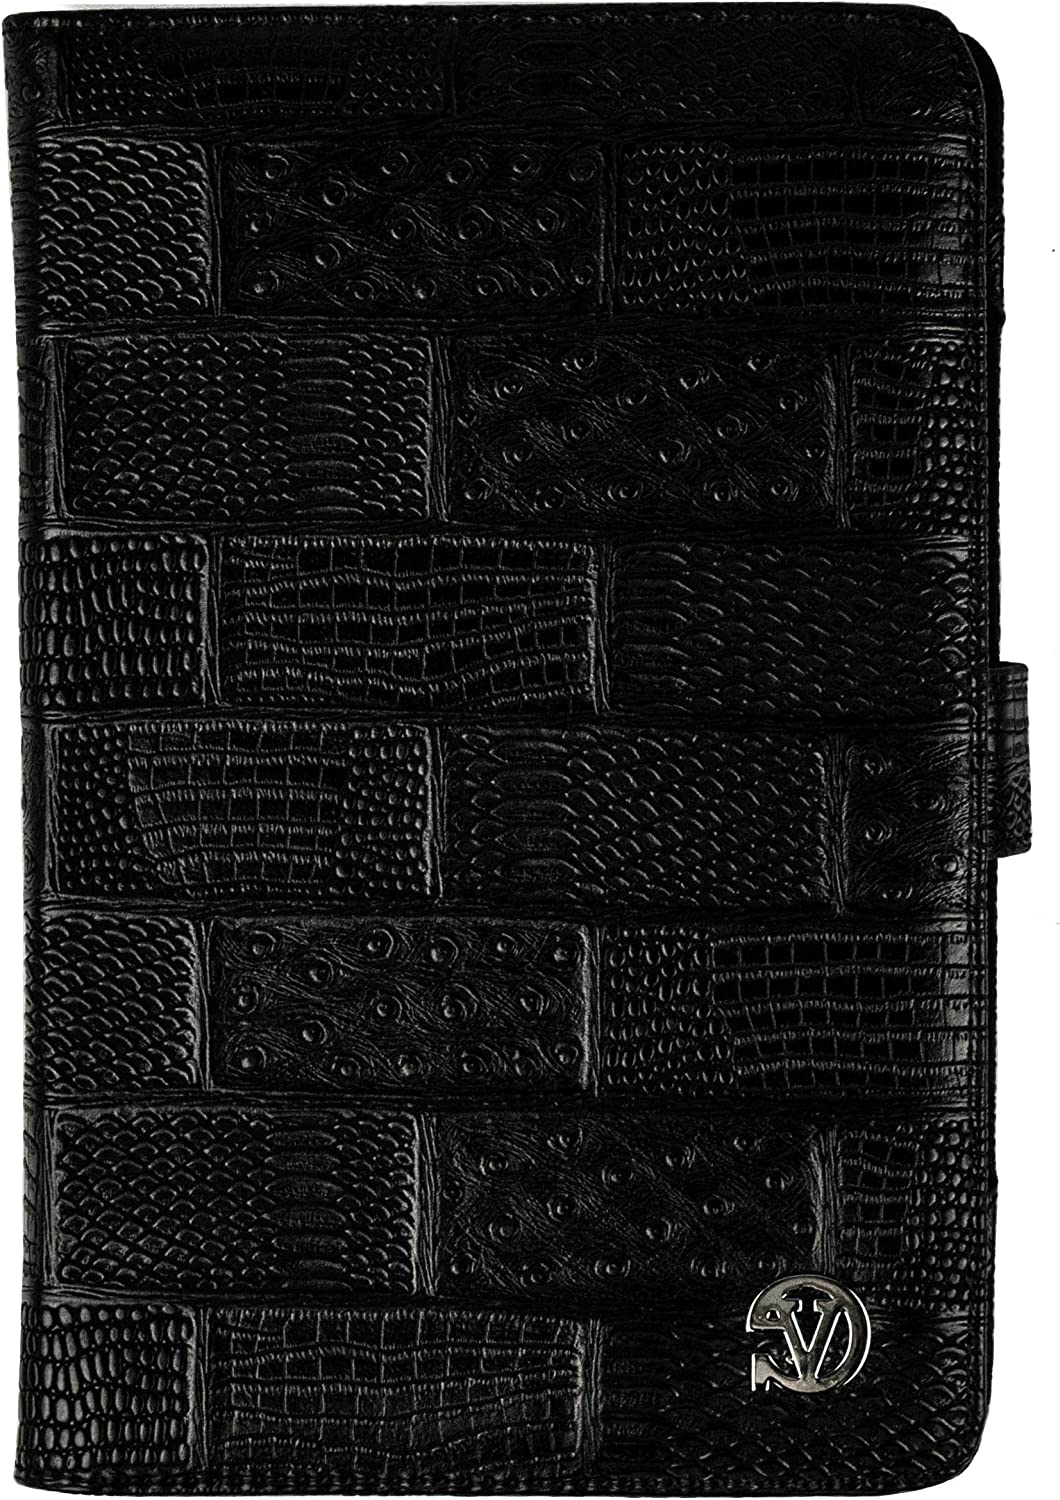 Dauphine Snake Skin Travel Wallet Case for Akaso KingPad R70 7 inch Tablet